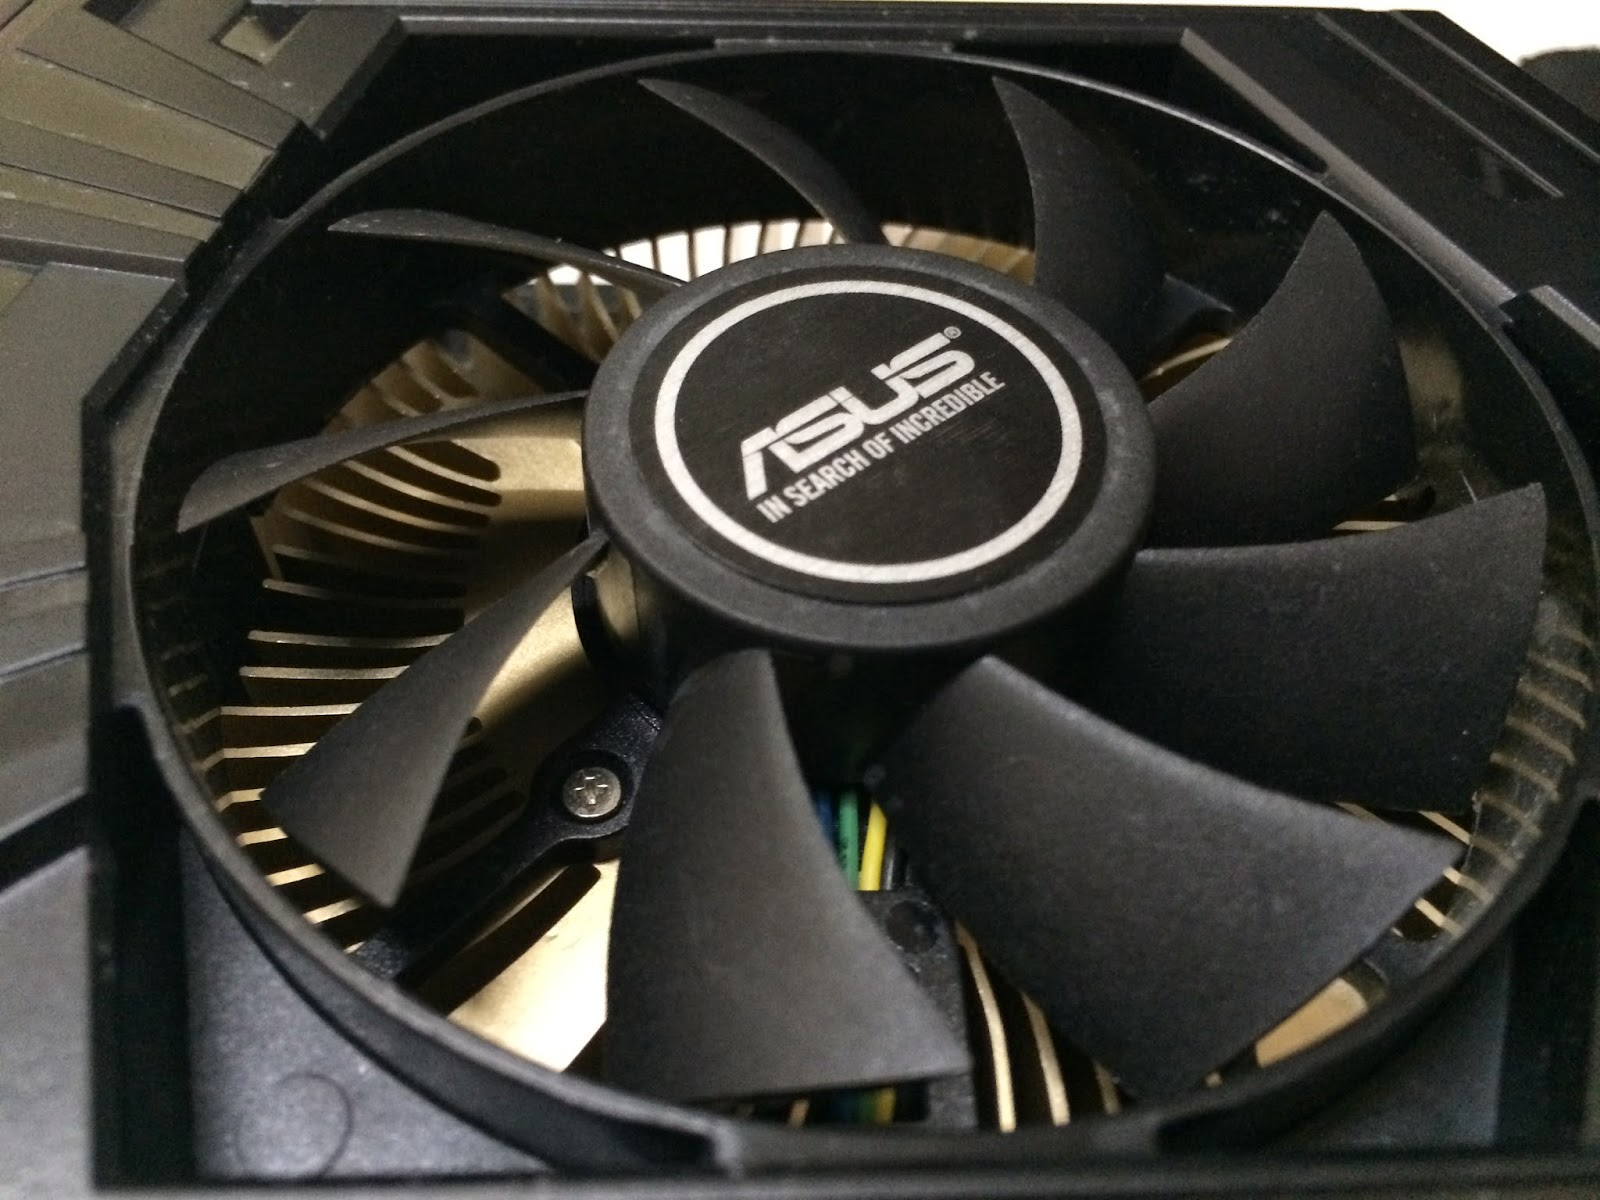 ASUS GTX 750 Performance Review 13